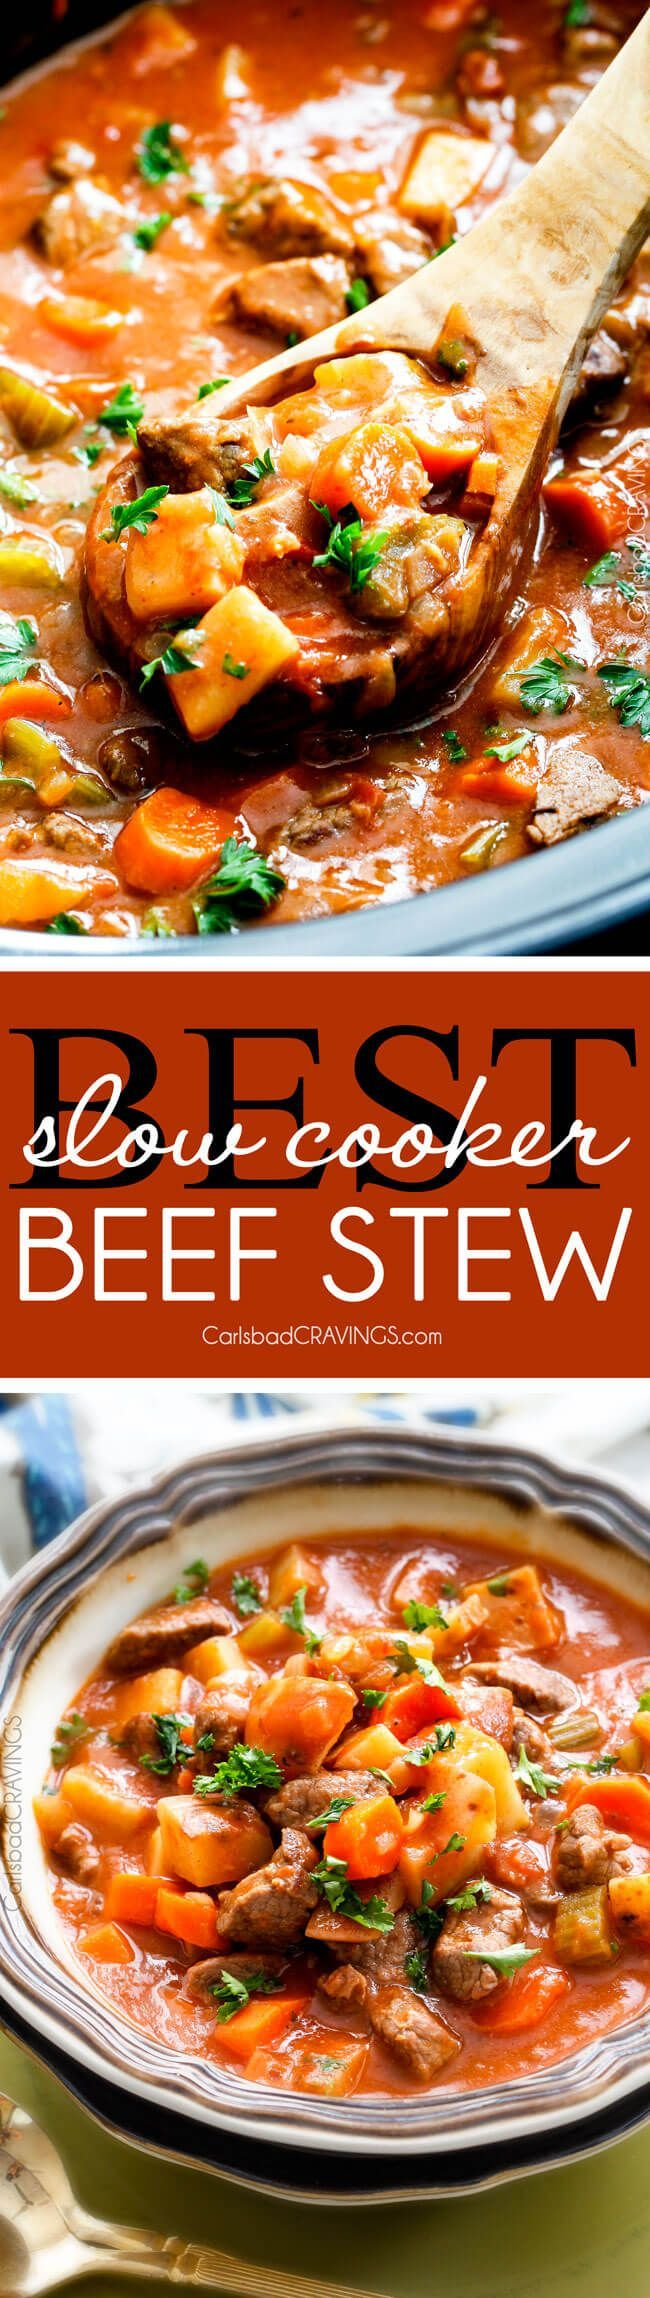 Slow Cooker Beef Stew - this is the best beef stew recipe I have ever tried! Super flavorful and SO Easy! You will want to drink the gravy broth! via /carlsbadcraving/